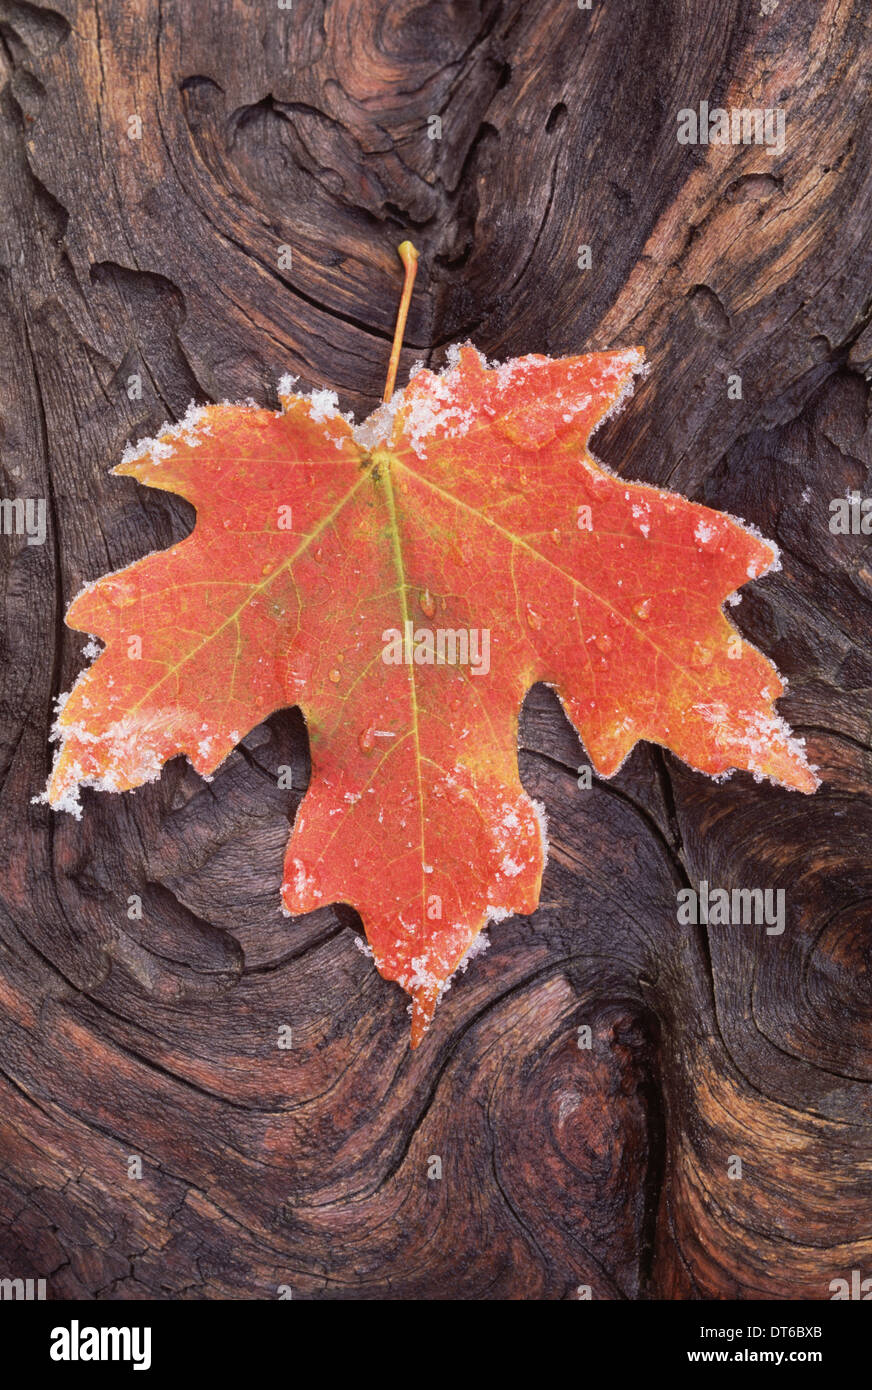 A frosted red brown maple leaf, autumn foliage with ice crystals around the edge. A gnarled wood surface. - Stock Image